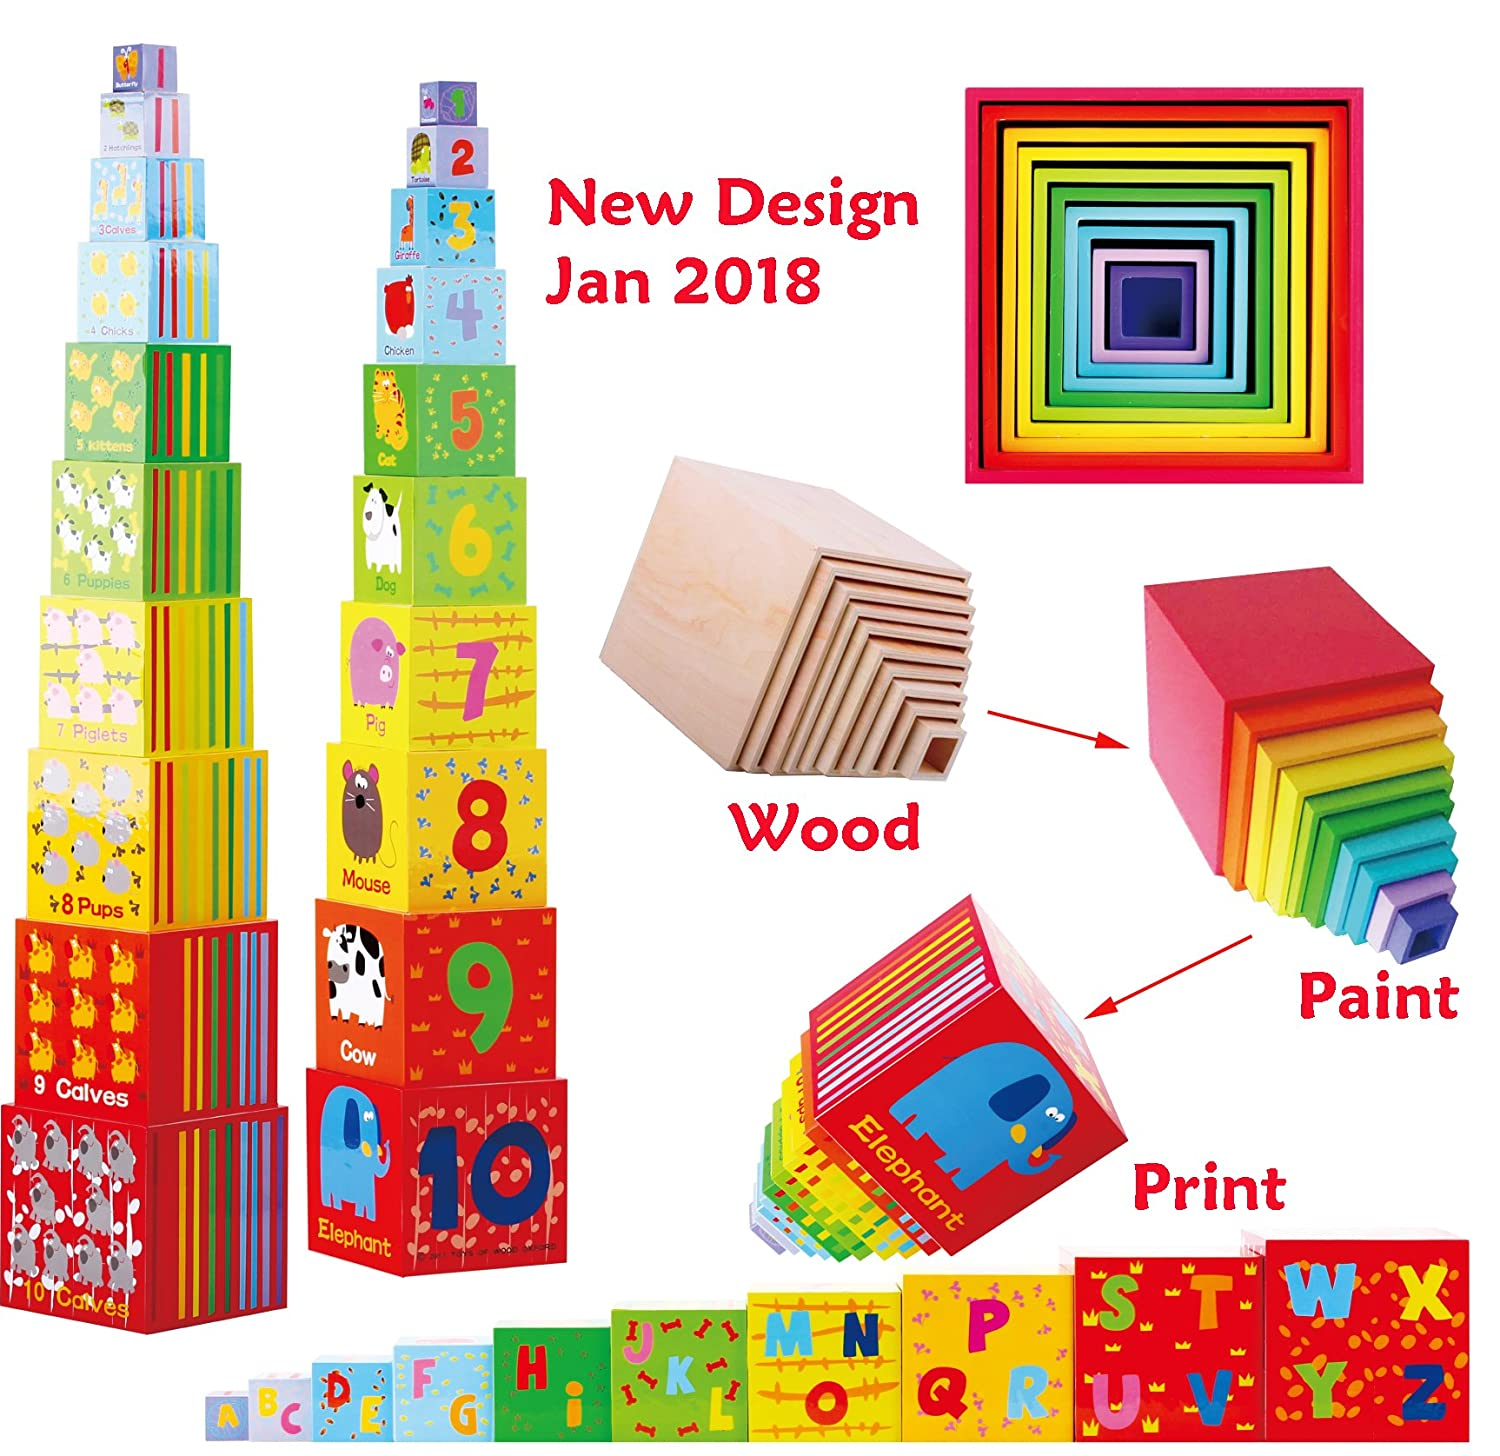 TOWO Wooden Stacking Boxes Rainbow Colour - Alphabet Nesting and Sorting Cups with Number -Stacking Cubes Educational Toy for 2 Years Old